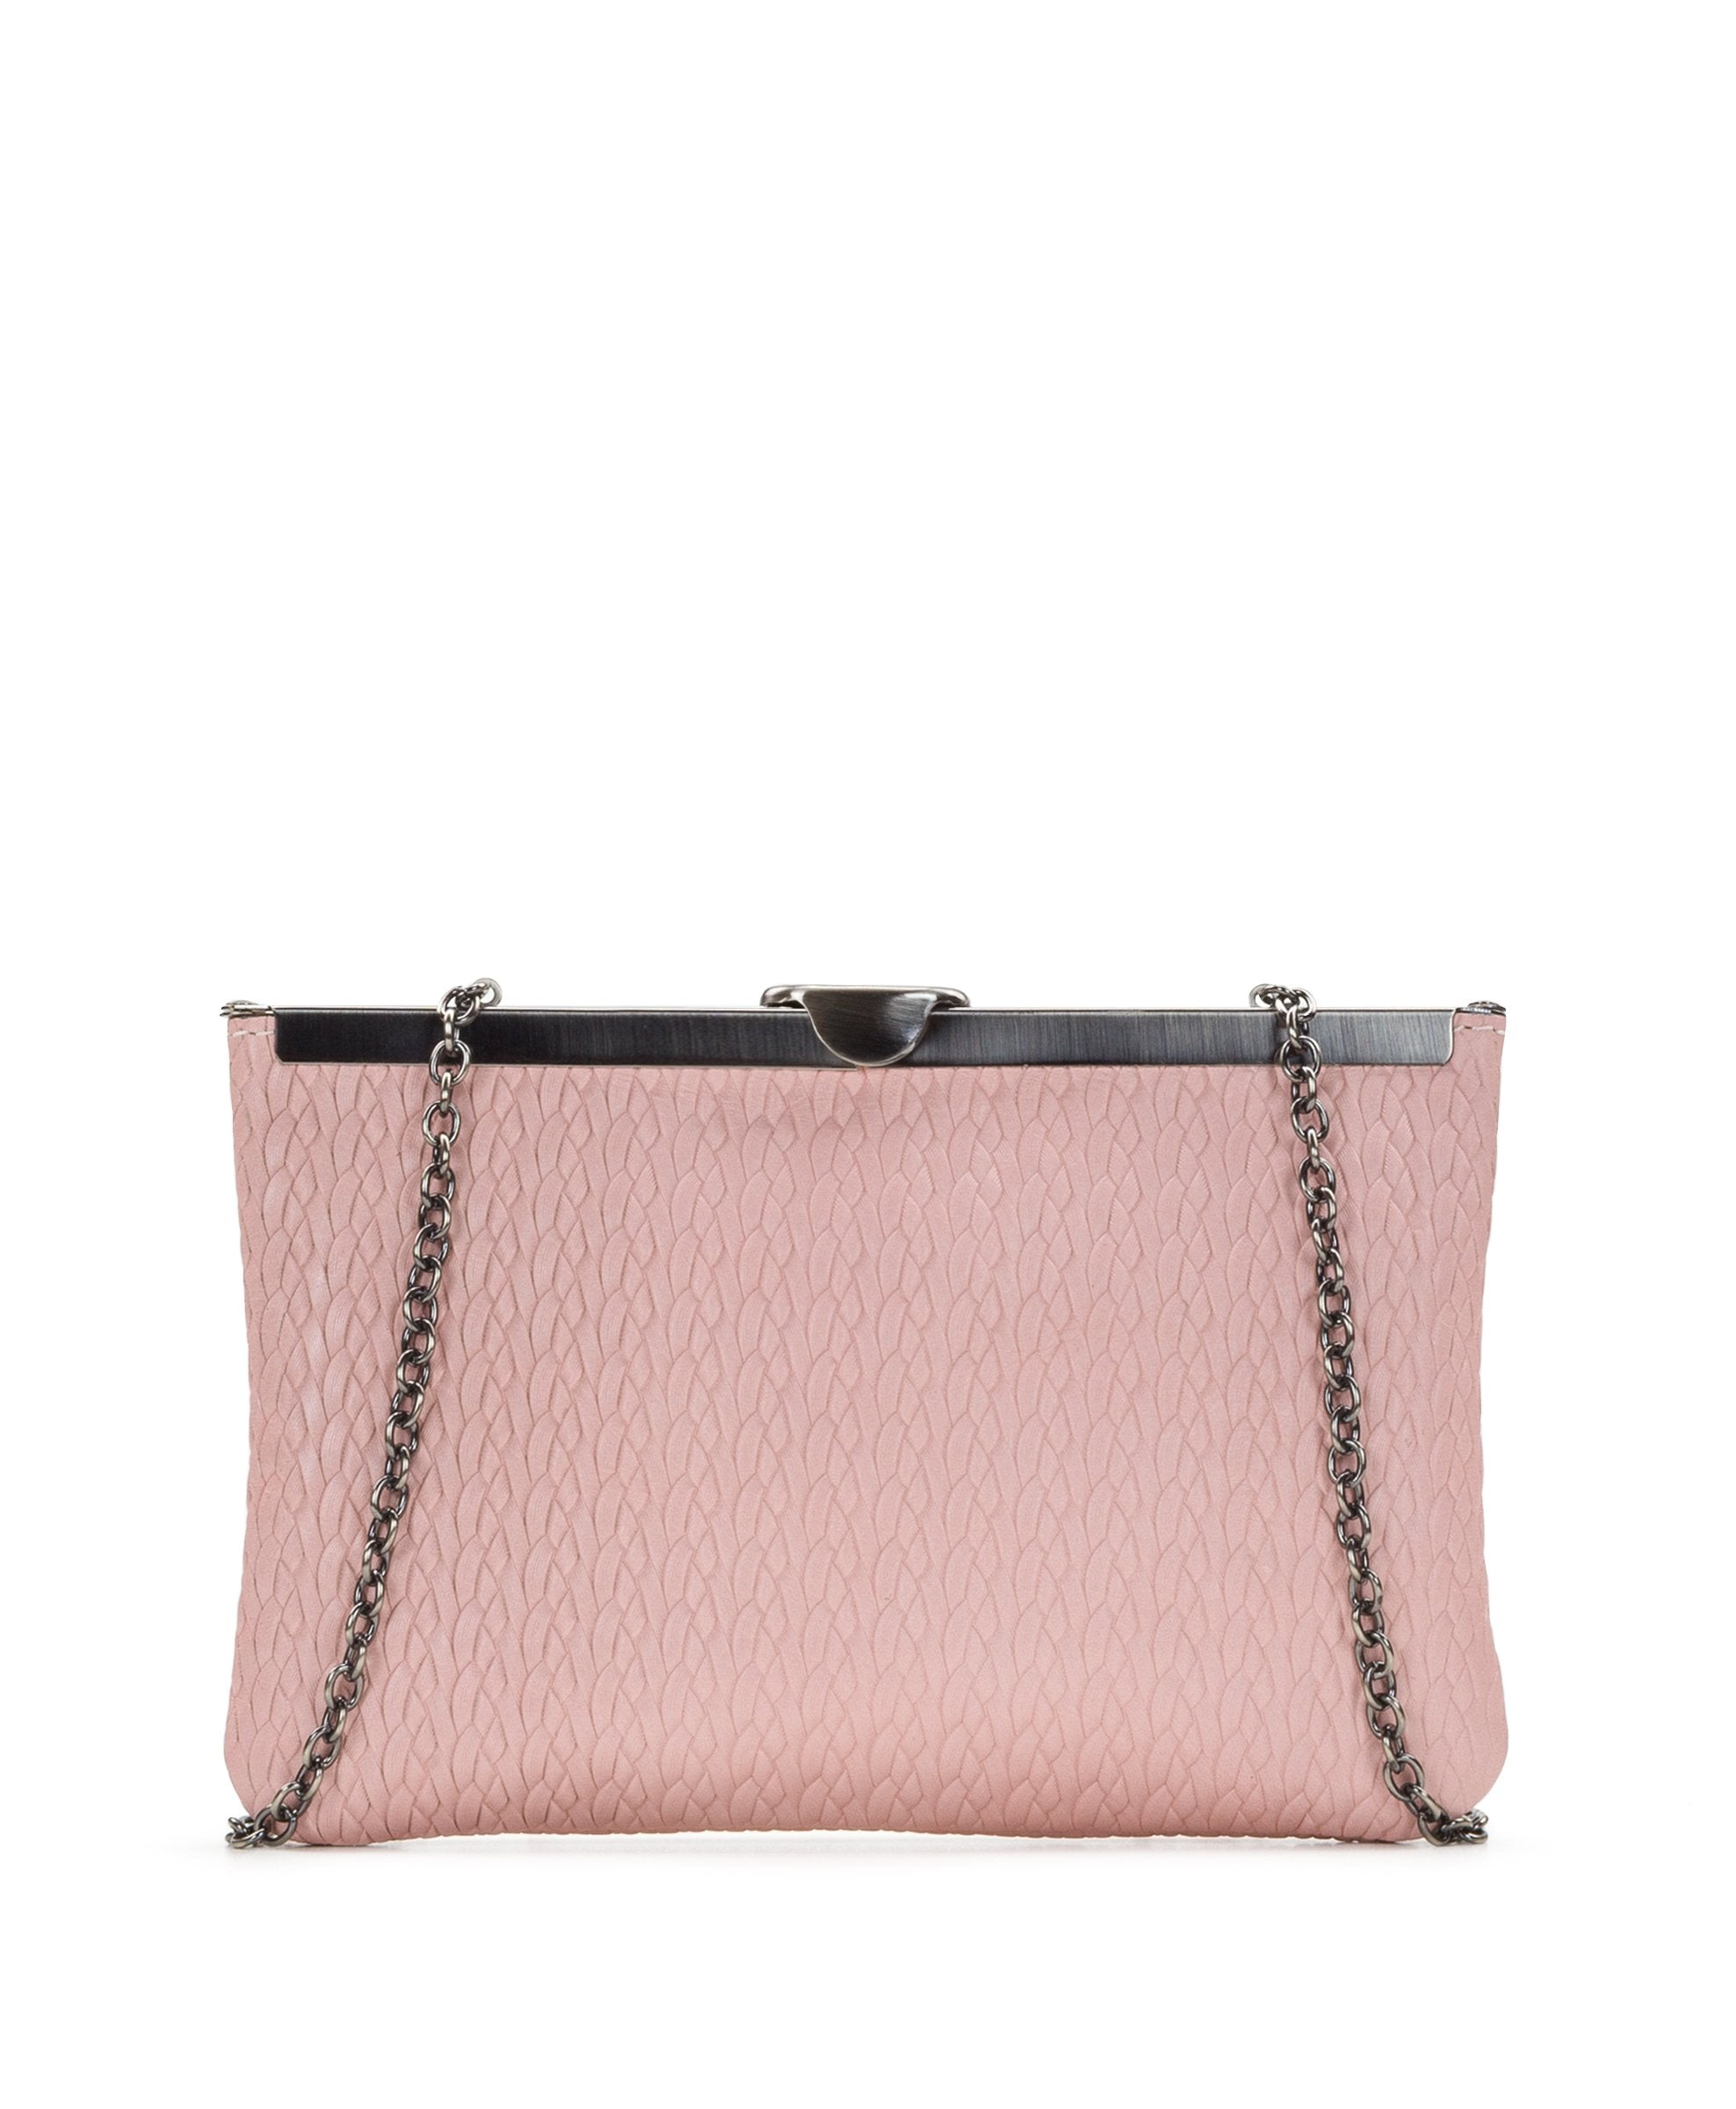 Asher Frame Clutch - Twisted Woven Embossed